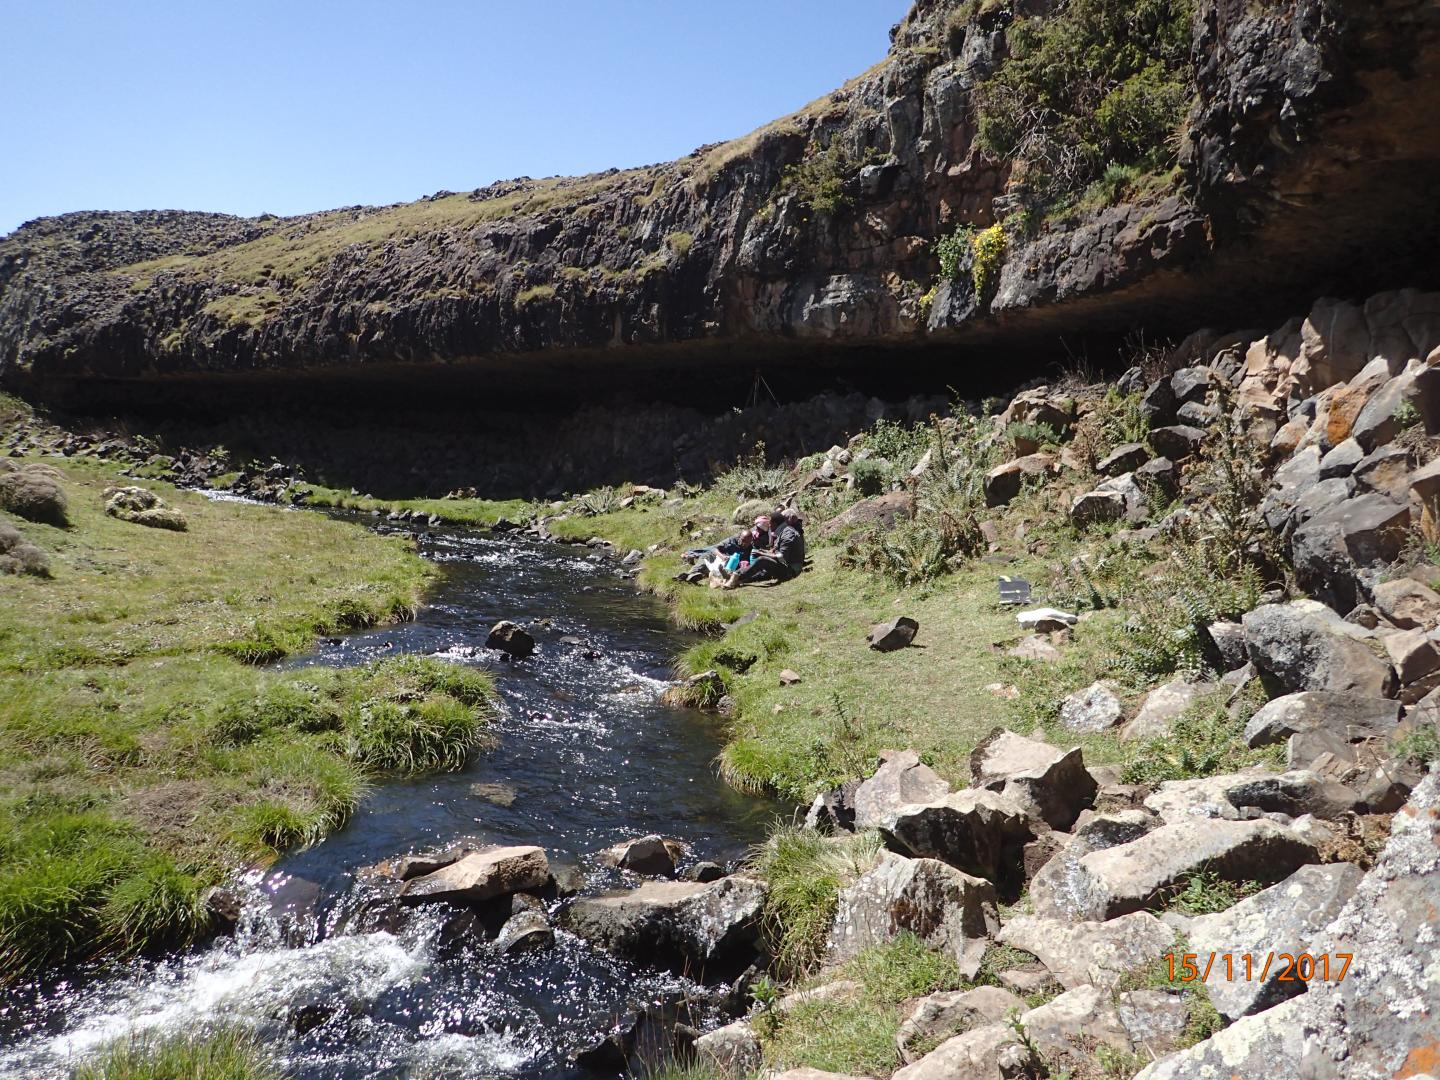 During last ice age, Ethiopians fled to mountains- study